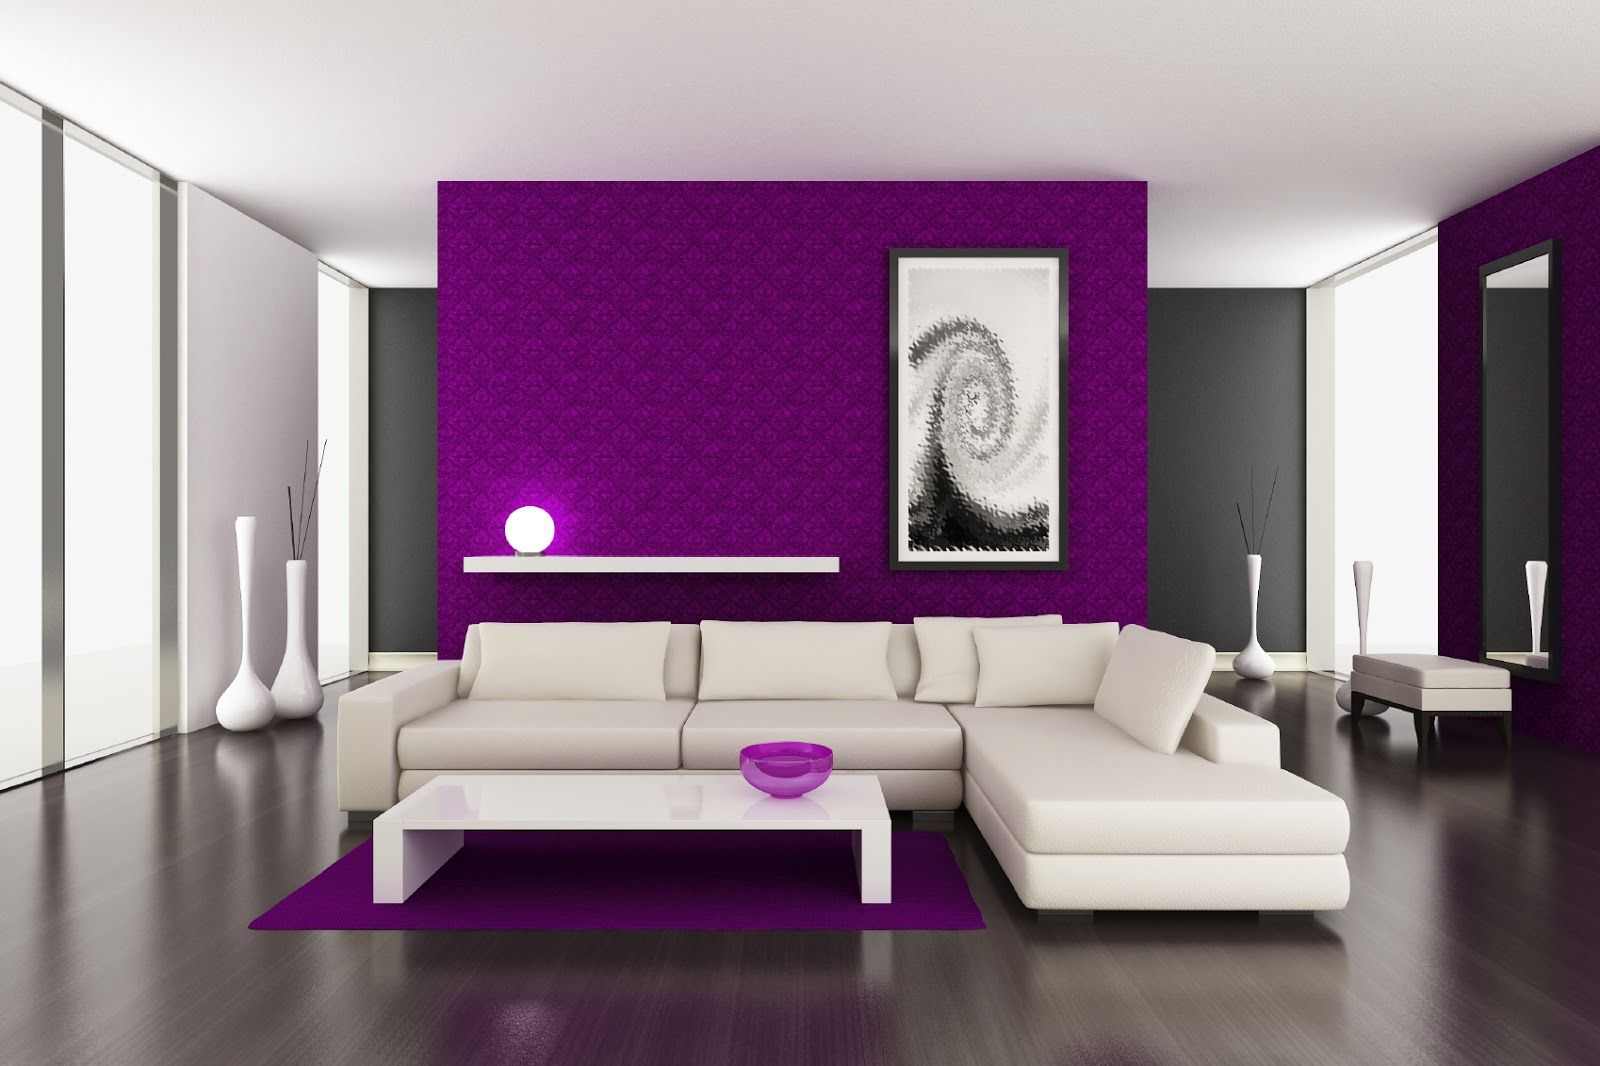 painting the living room walls | interior purple color painting ideas for painting  walls